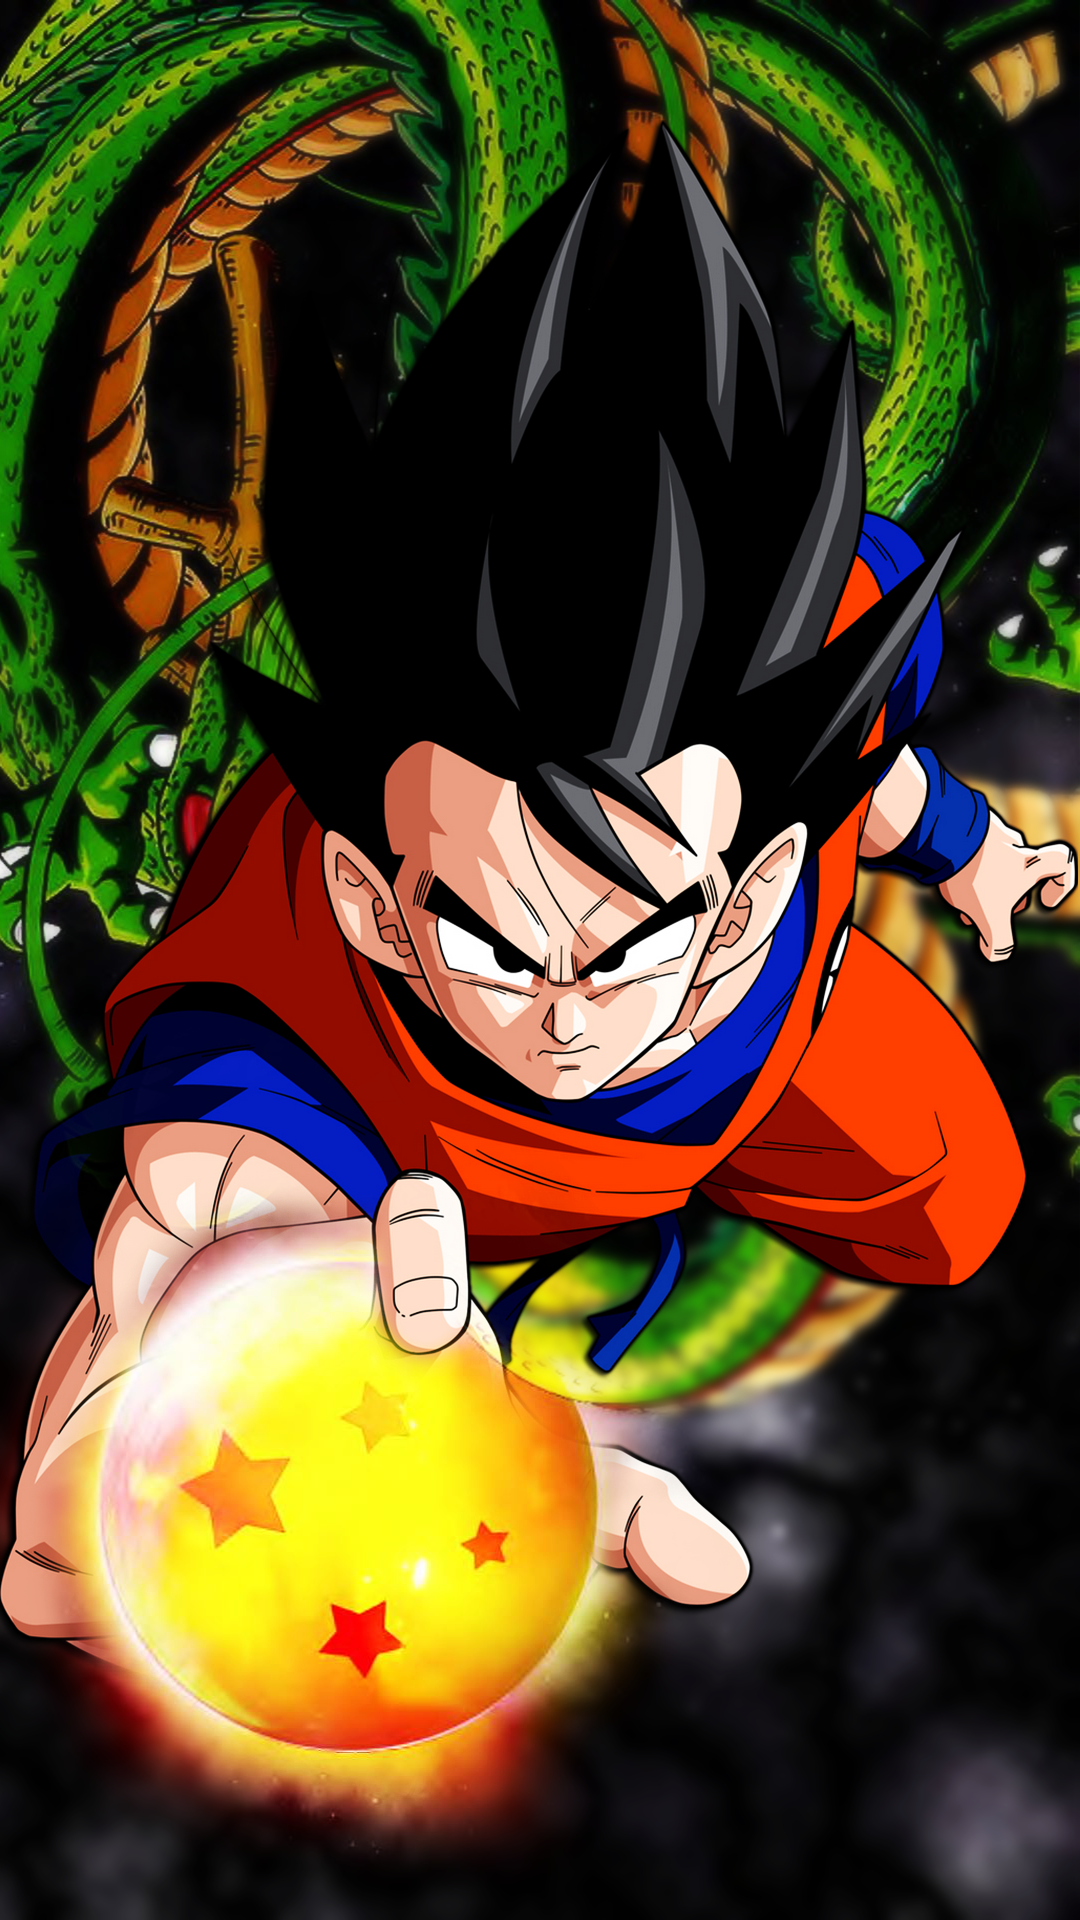 Download our hd goku dragon ball wallpaper for android - Free dragonfly wallpaper for android ...